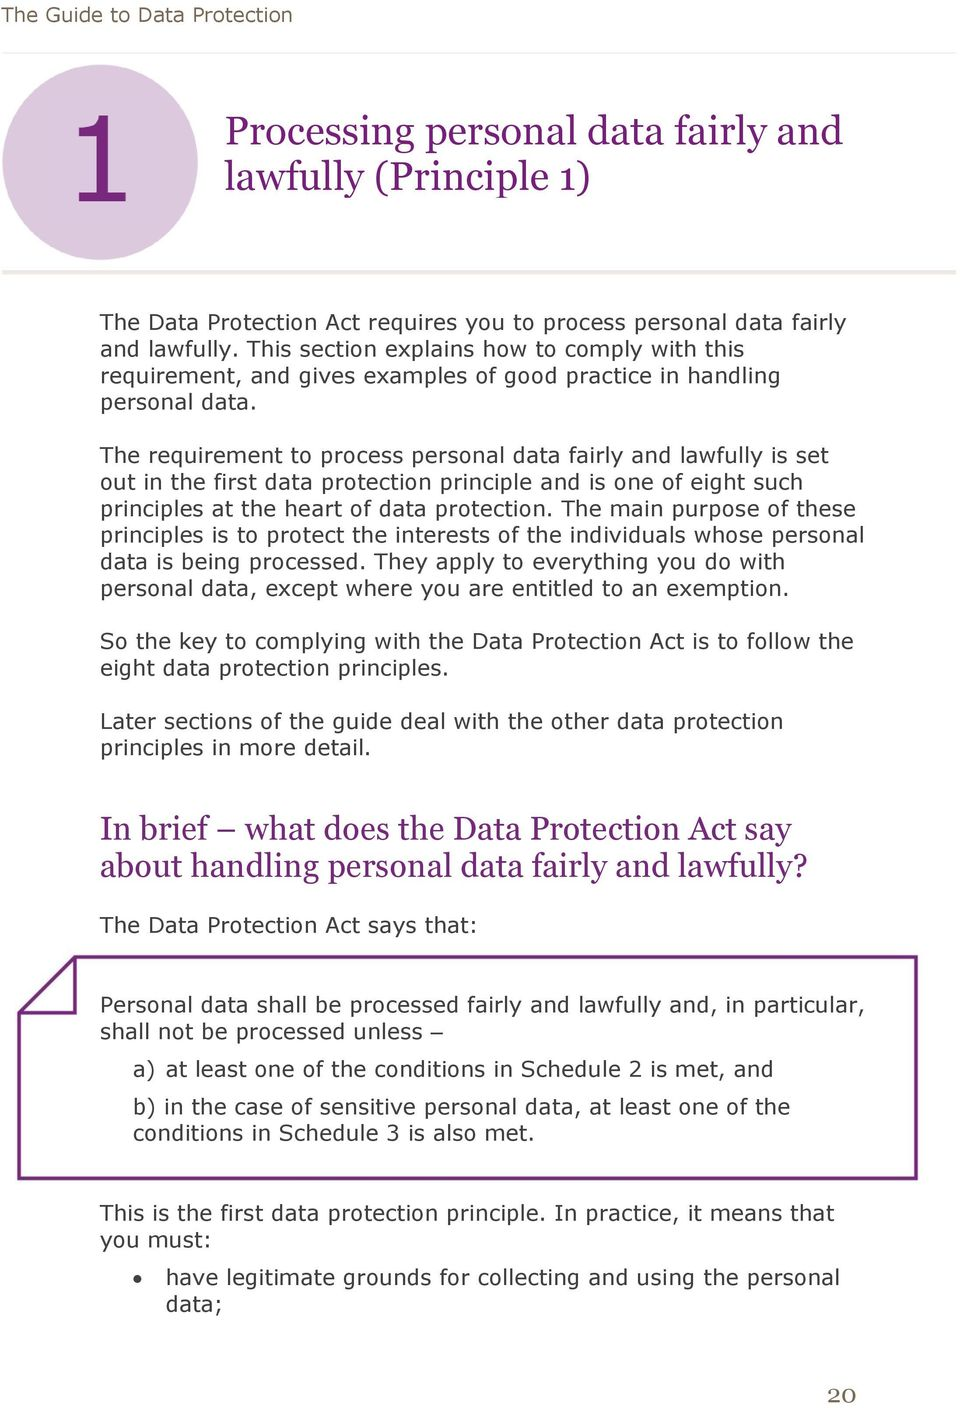 The requirement to process personal data fairly and lawfully is set out in the first data protection principle and is one of eight such principles at the heart of data protection.